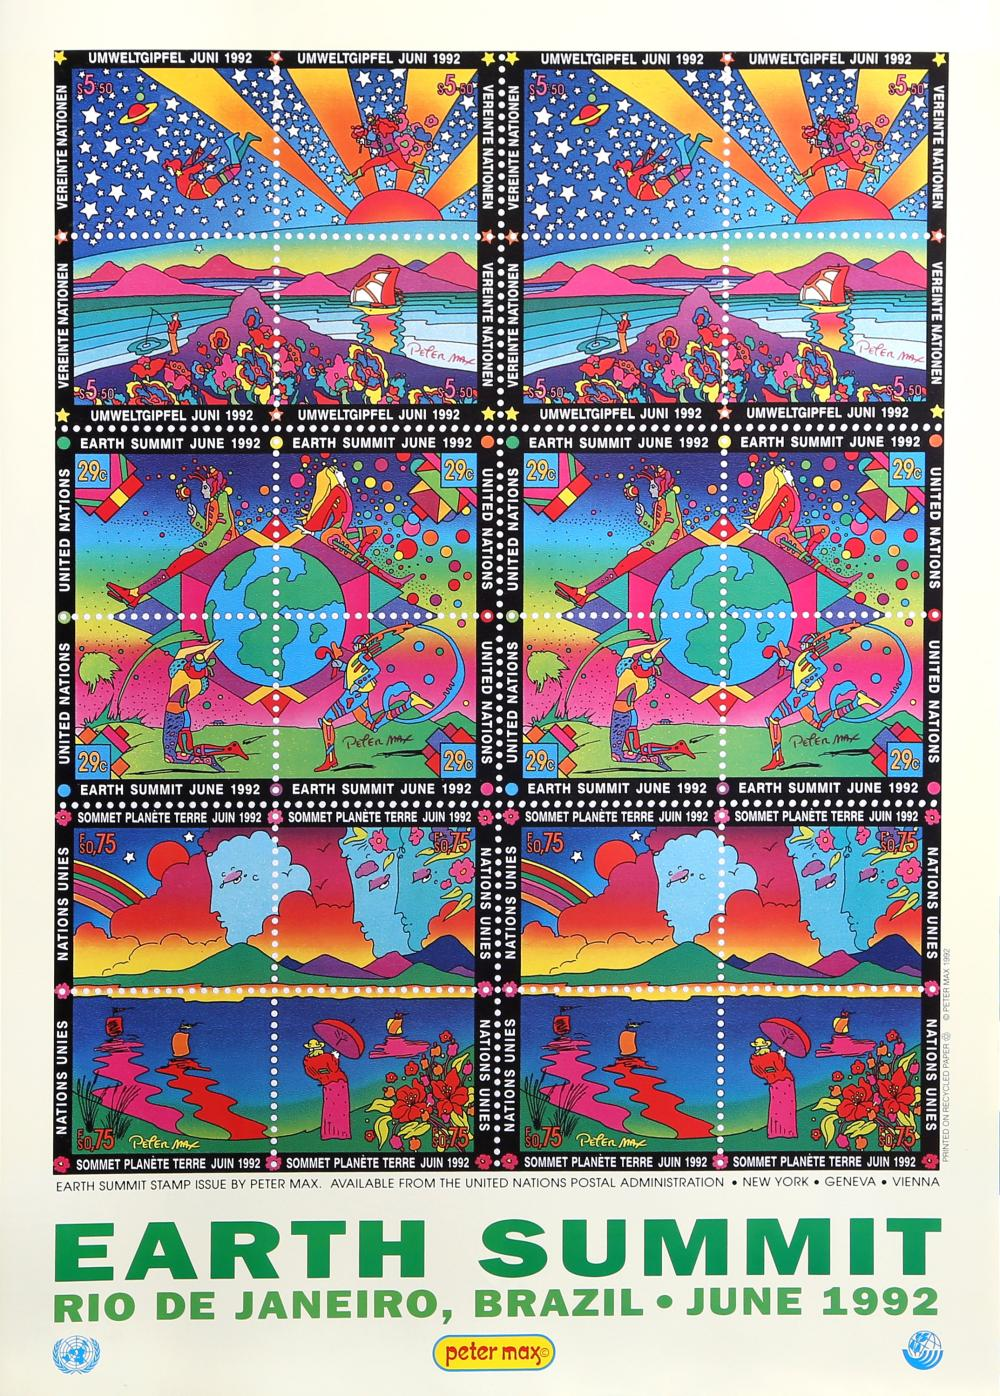 Peter Max, Earth Summit, Poster